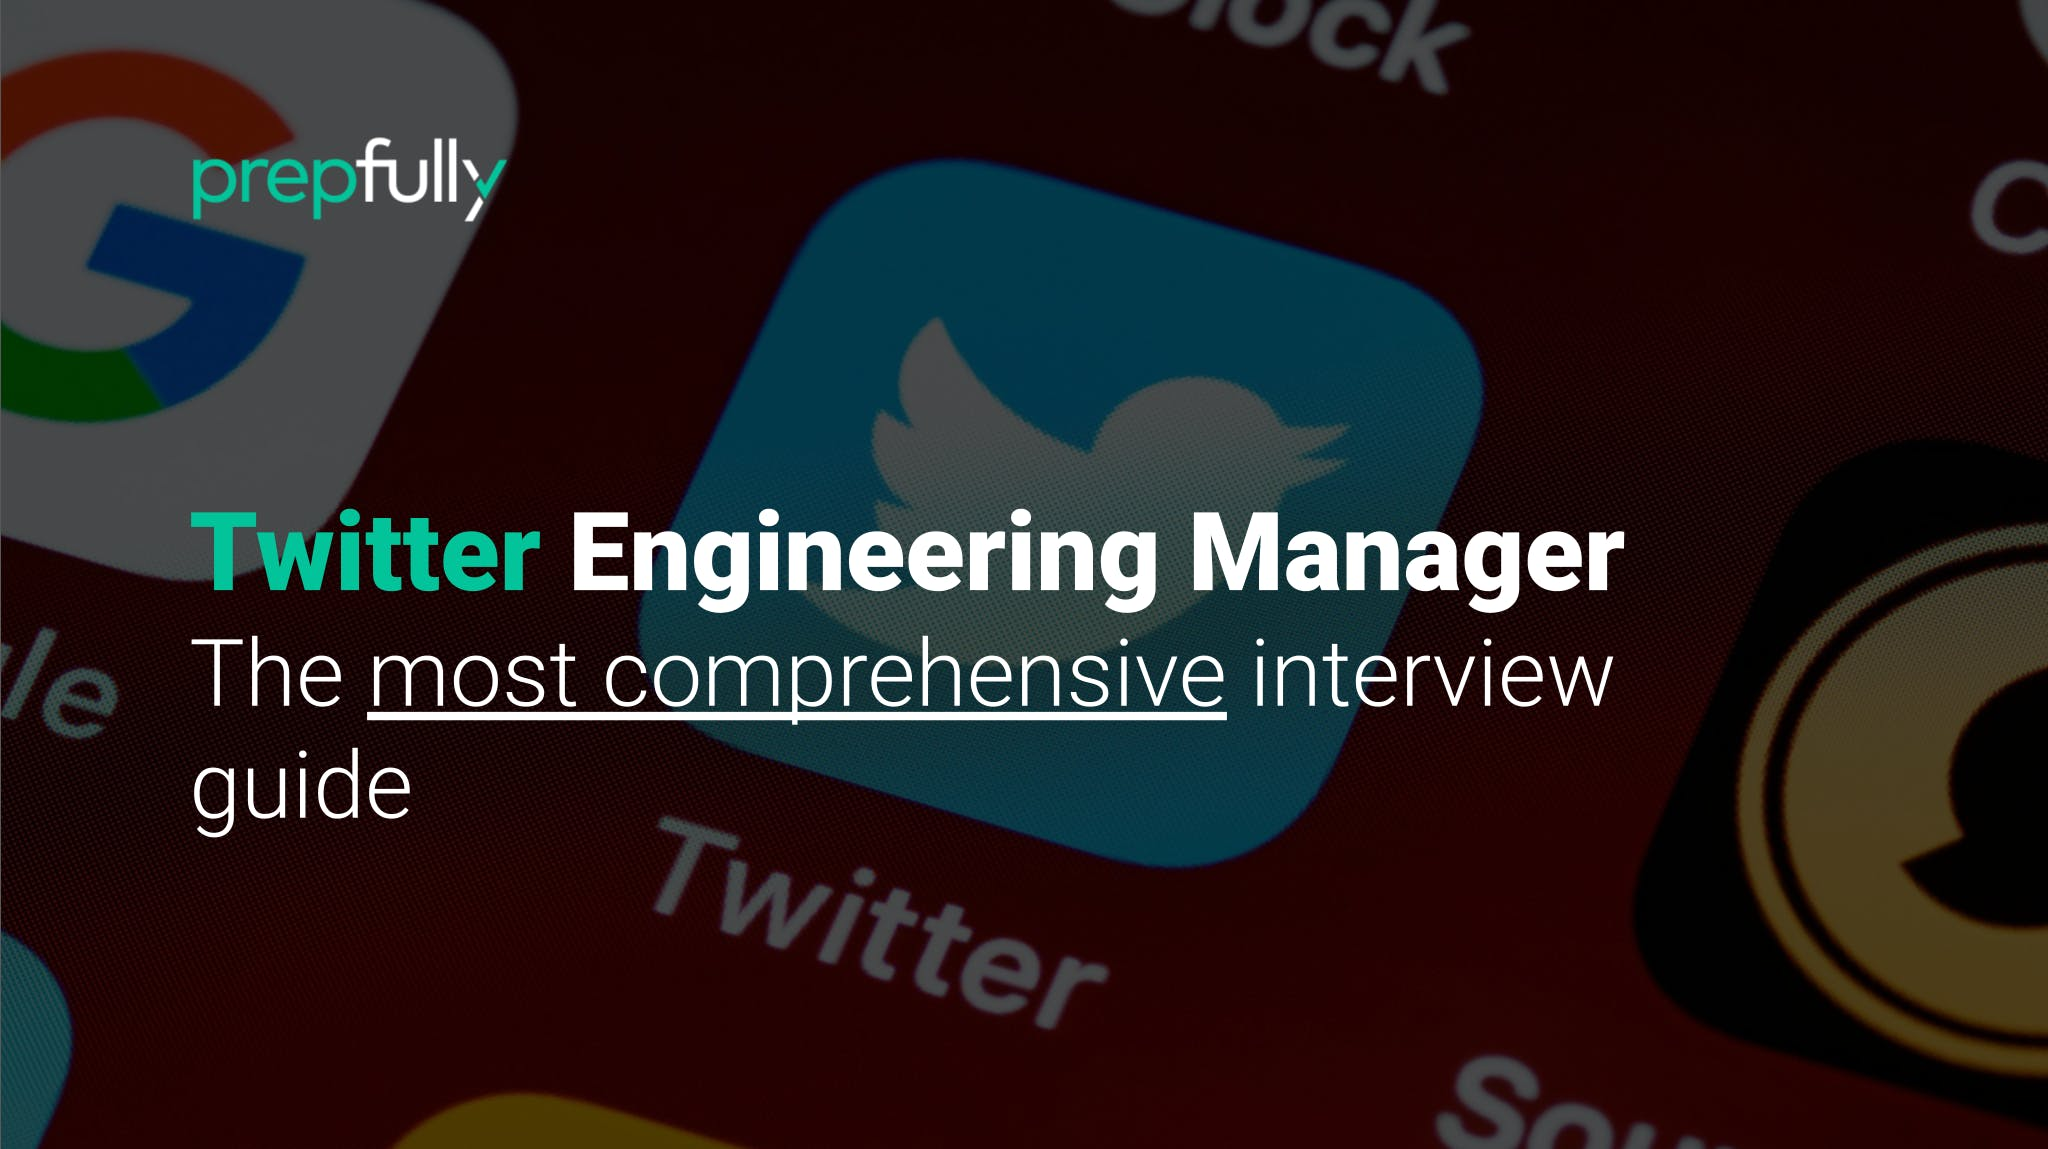 Interview guide for Twitter Engineeering Manager